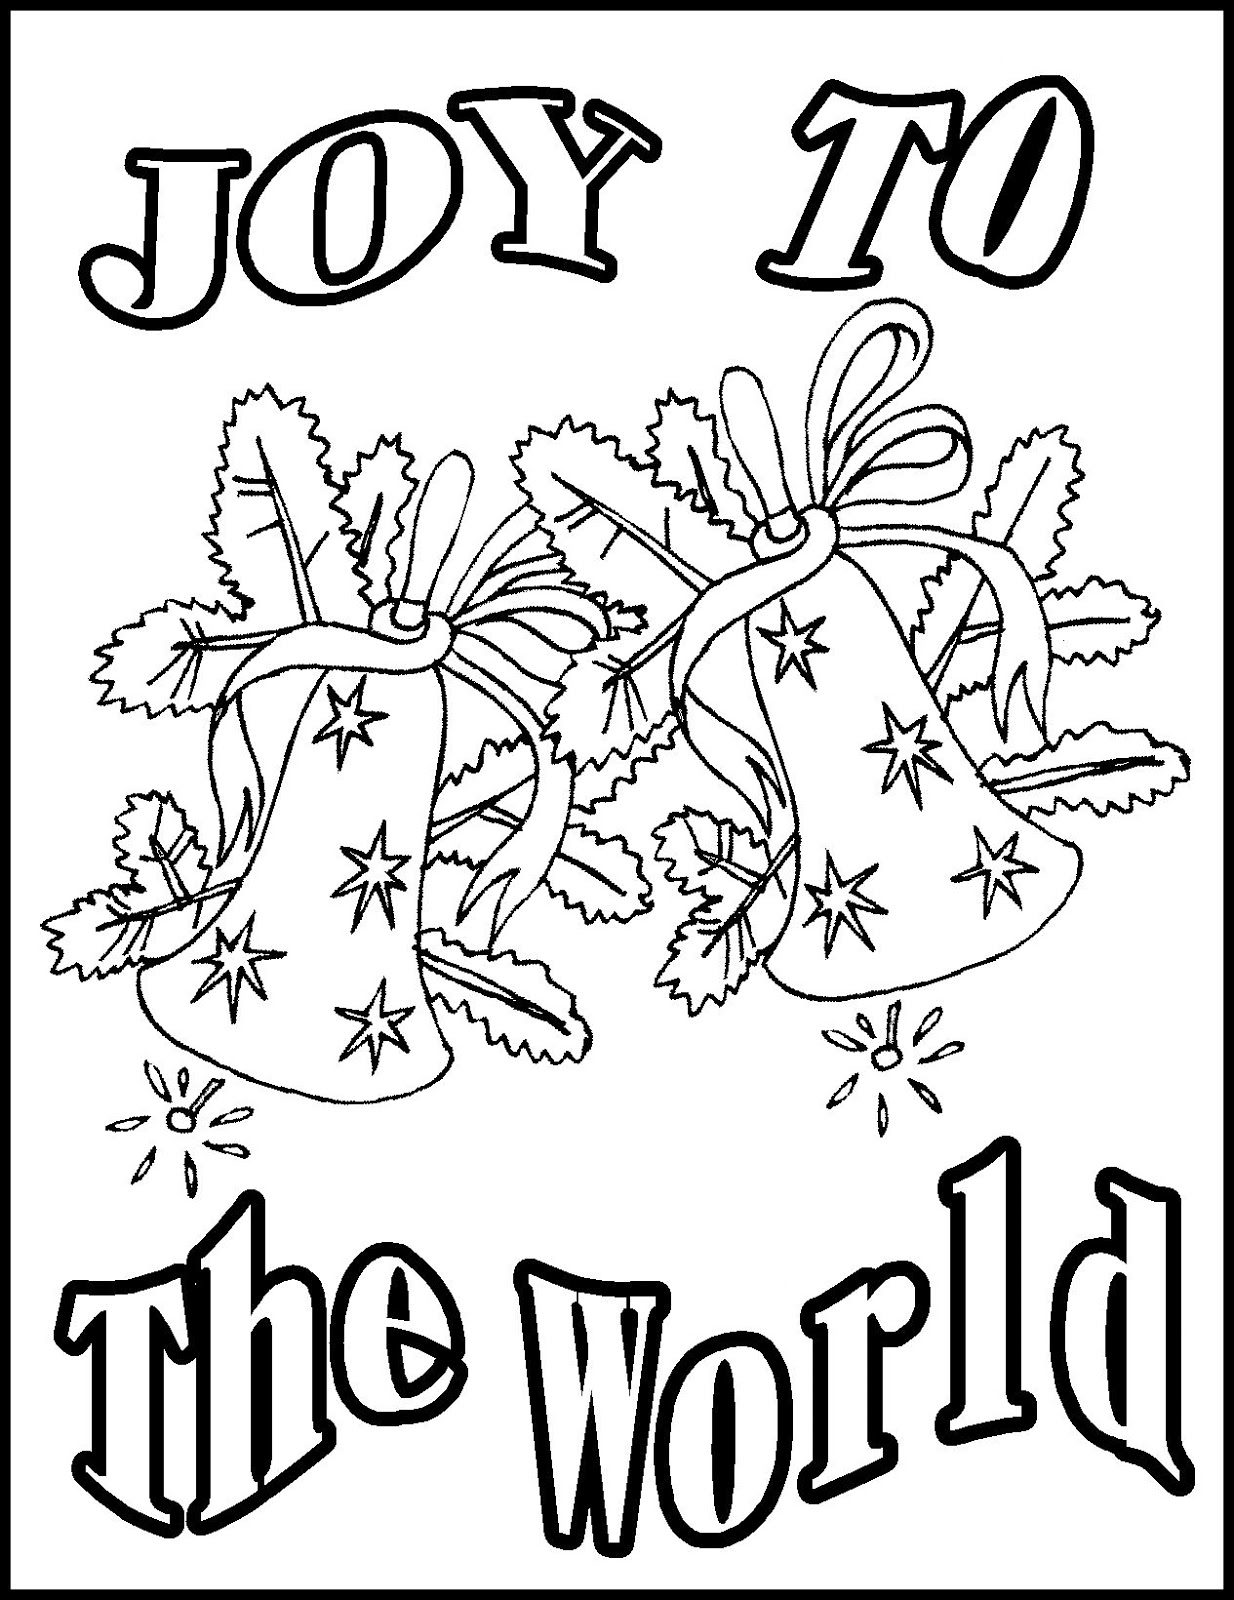 christian children coloring pages free - photo#36